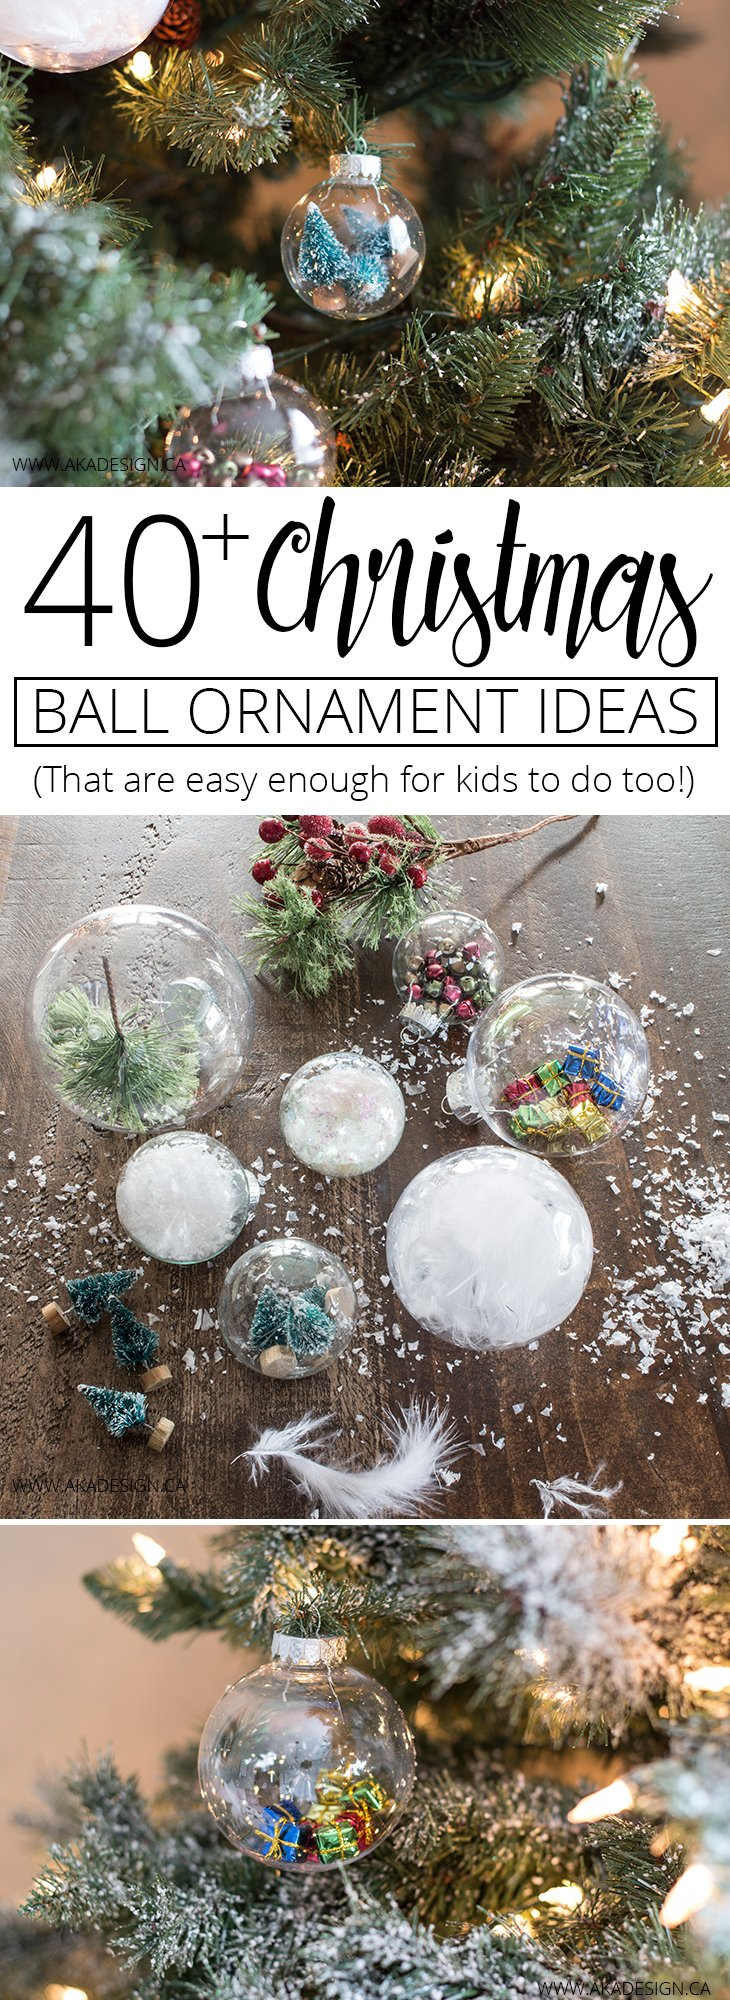 Christmas ball ornament ideas for you to try this year